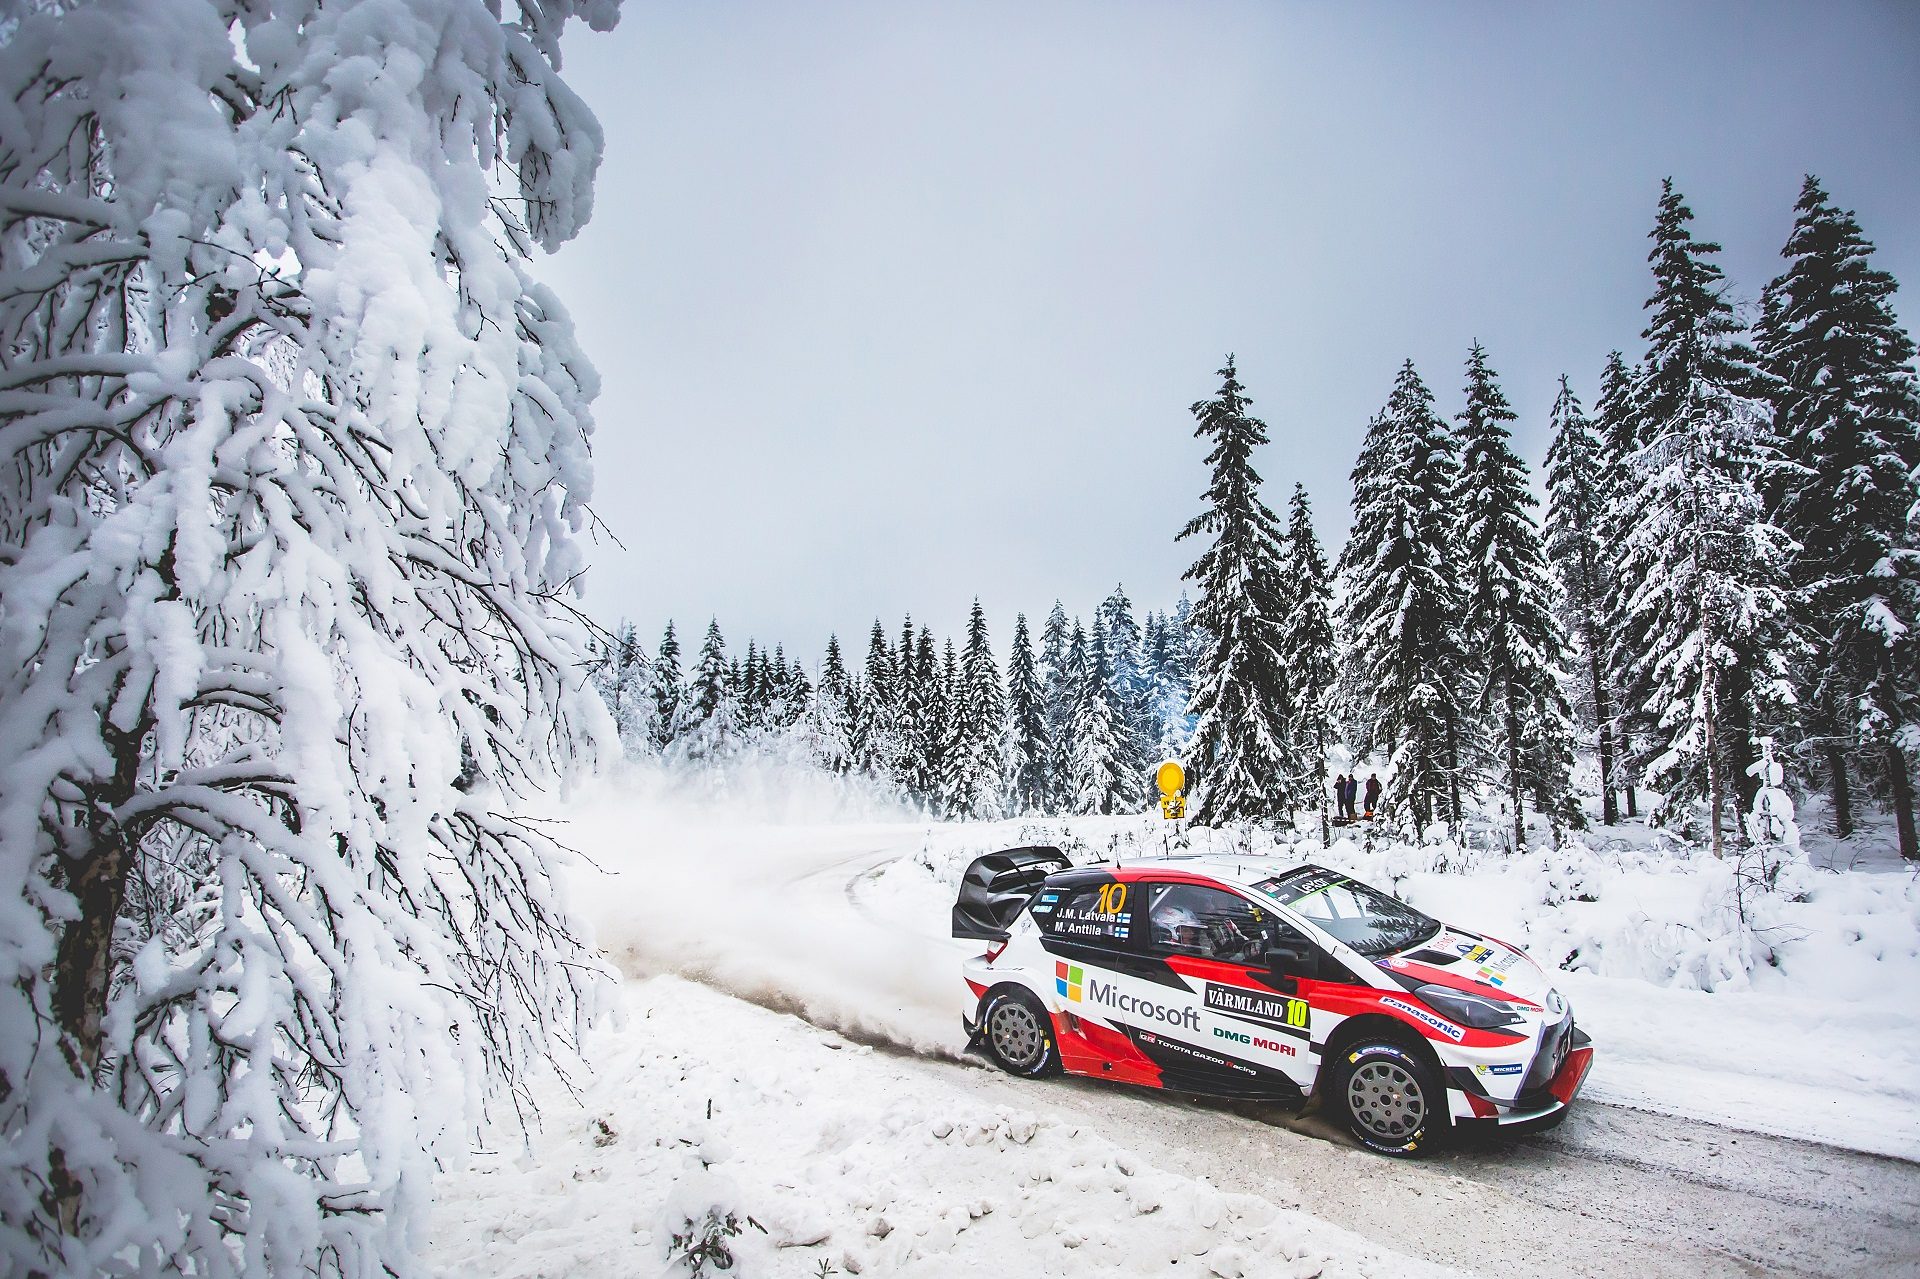 FIA WORLD RALLY CHAMPIONSHIP 2017 -WRC Sweden (SWE) -  WRC 09/02/2017 to 12/02/2017 - PHOTO : @World